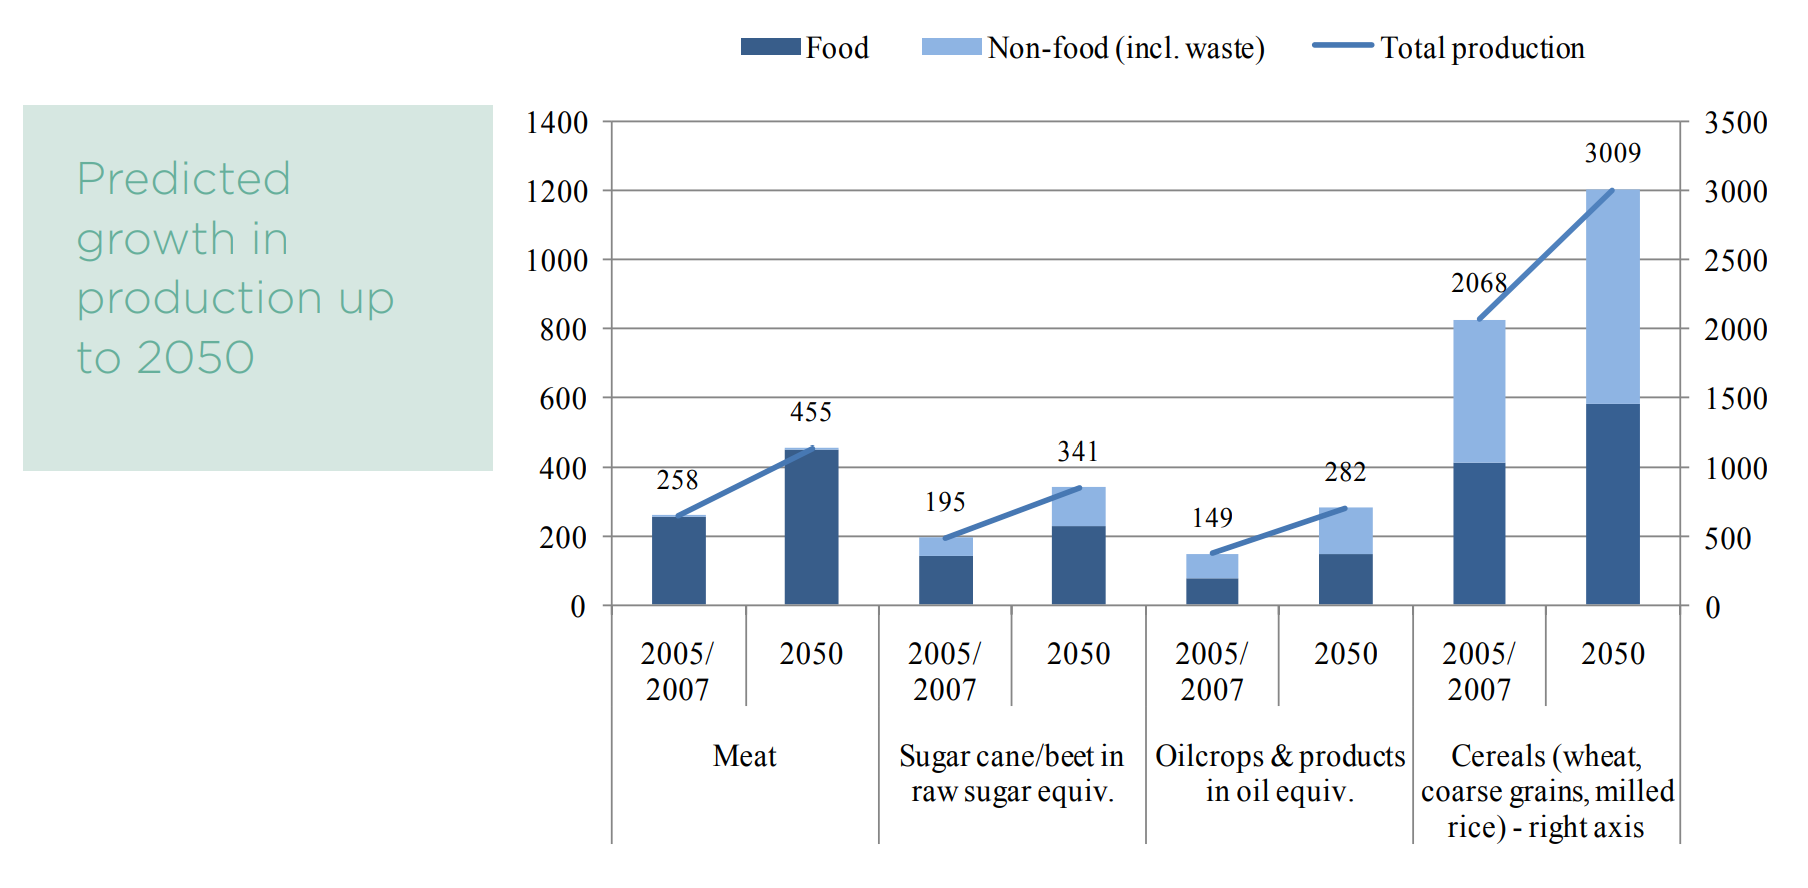 Figure 16: Projected growth in agricultural commodity production: 2005/2007 and 2050 projection